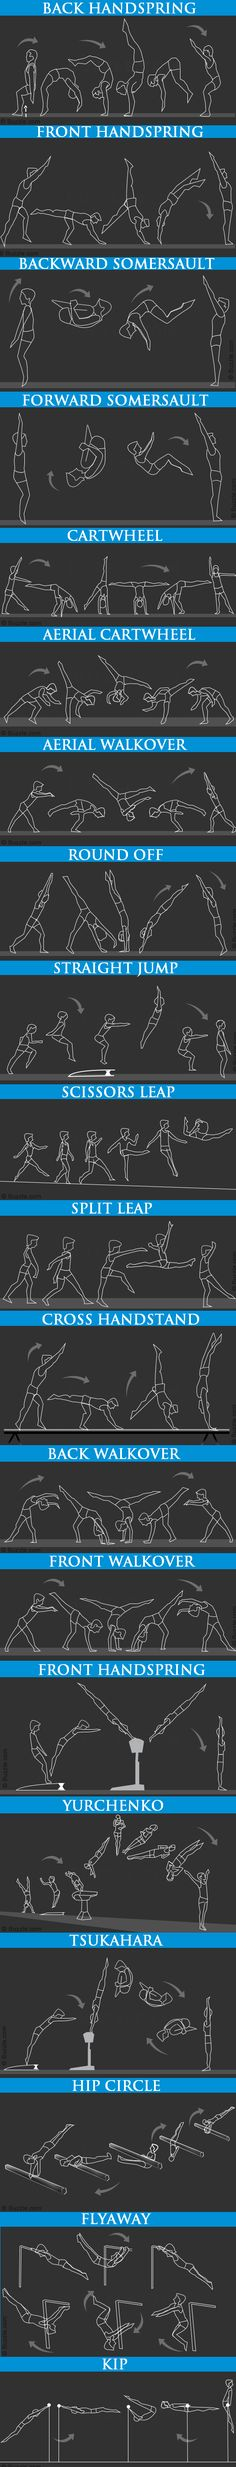 A simple no-equipment workout for every day: nine exercises, ten reps per set. V… – Fitness&Health&Gym For Women Gymnastics Tricks, Gymnastics Skills, Gymnastics Workout, Gymnastics Stretches, Tumbling Gymnastics, Sport Gymnastics, Easy Gymnastics Moves, How To Do Gymnastics, Flips Gymnastics